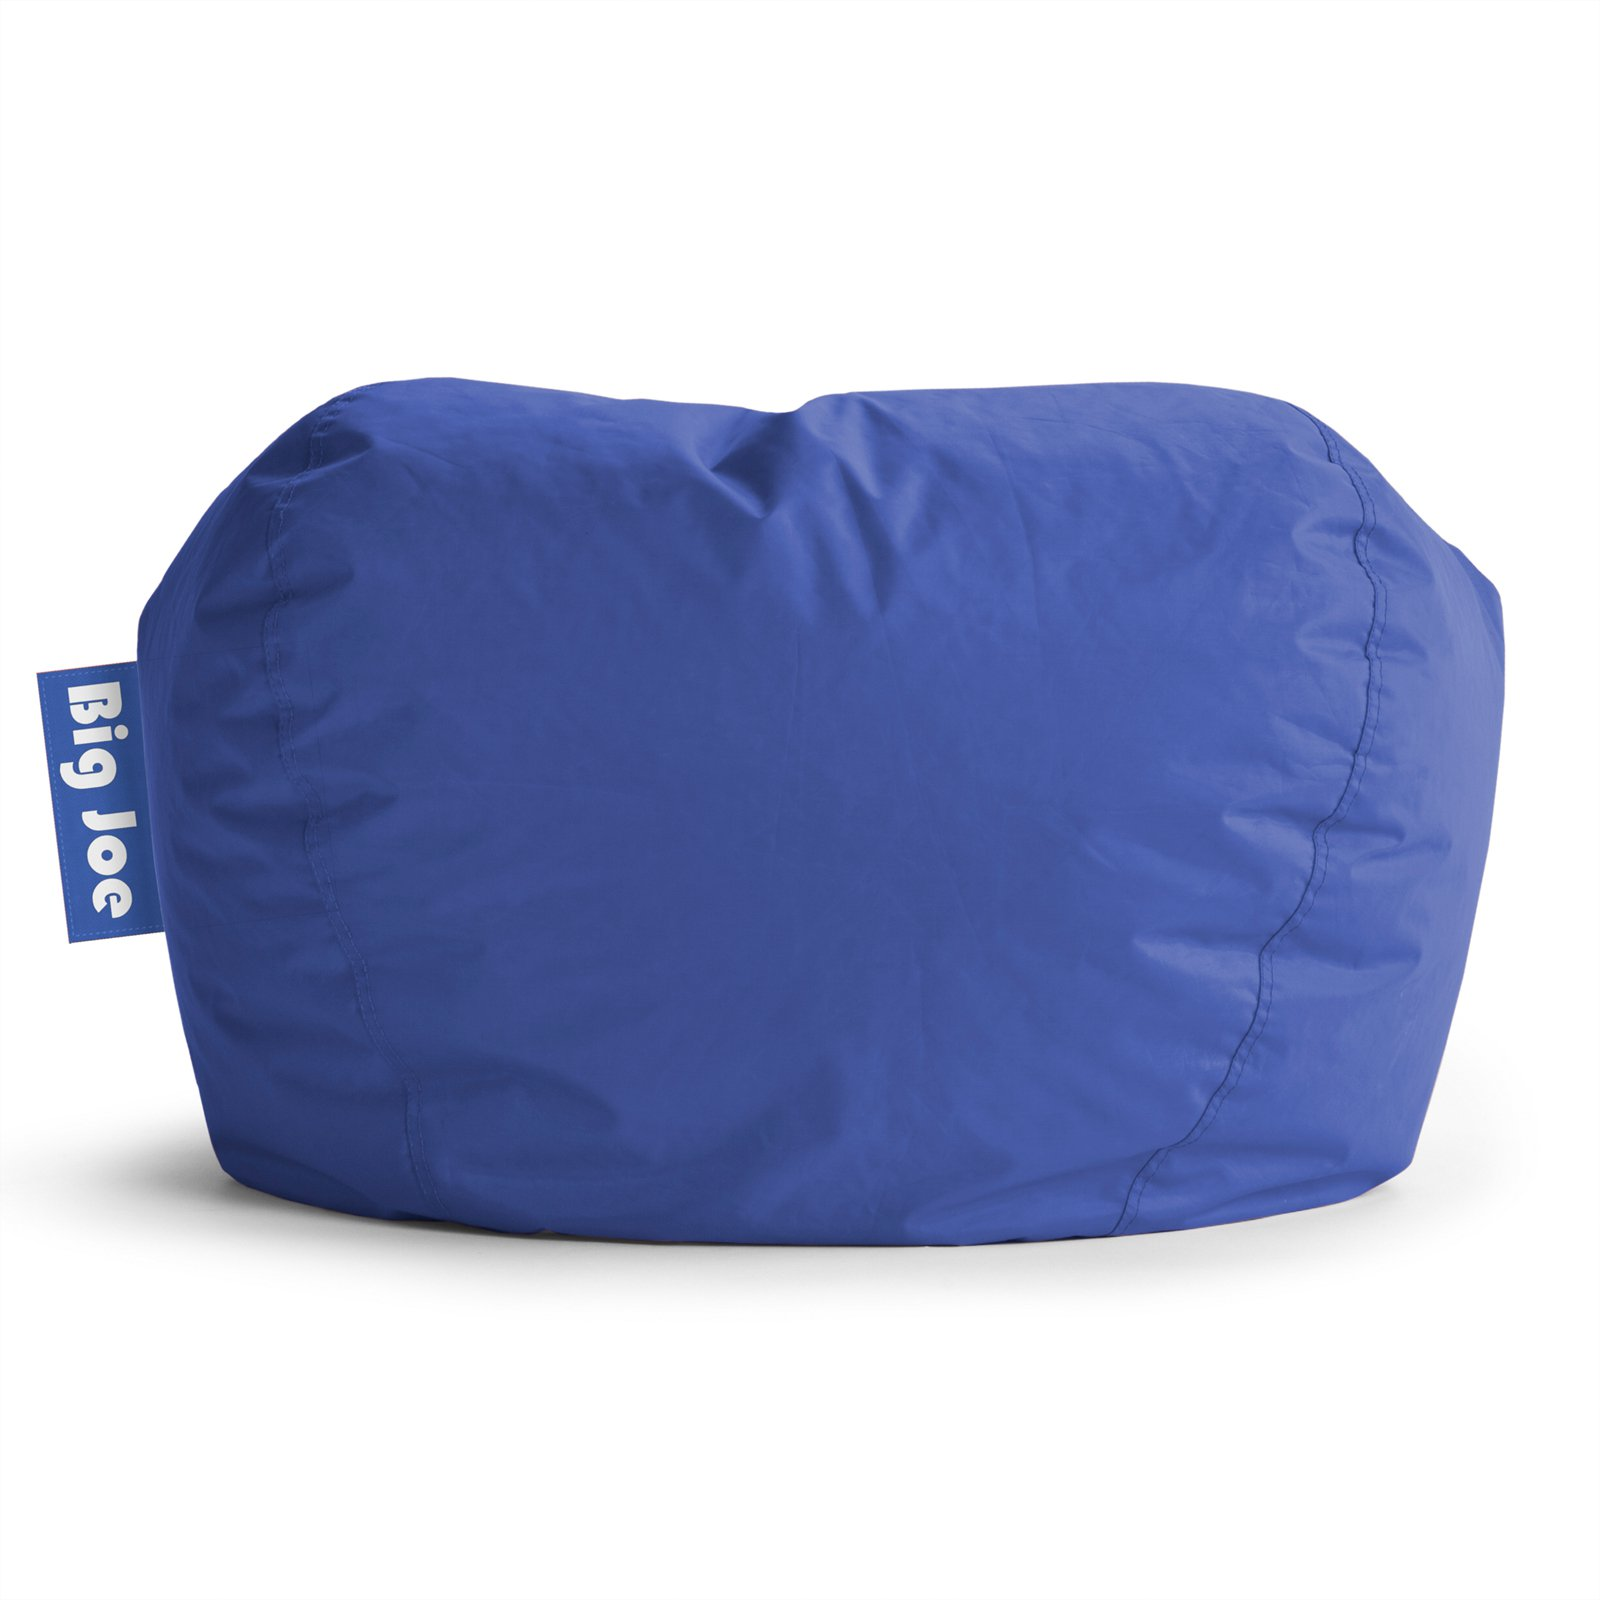 98 Big Joe Round Bean Bag Available In Multiple Colors